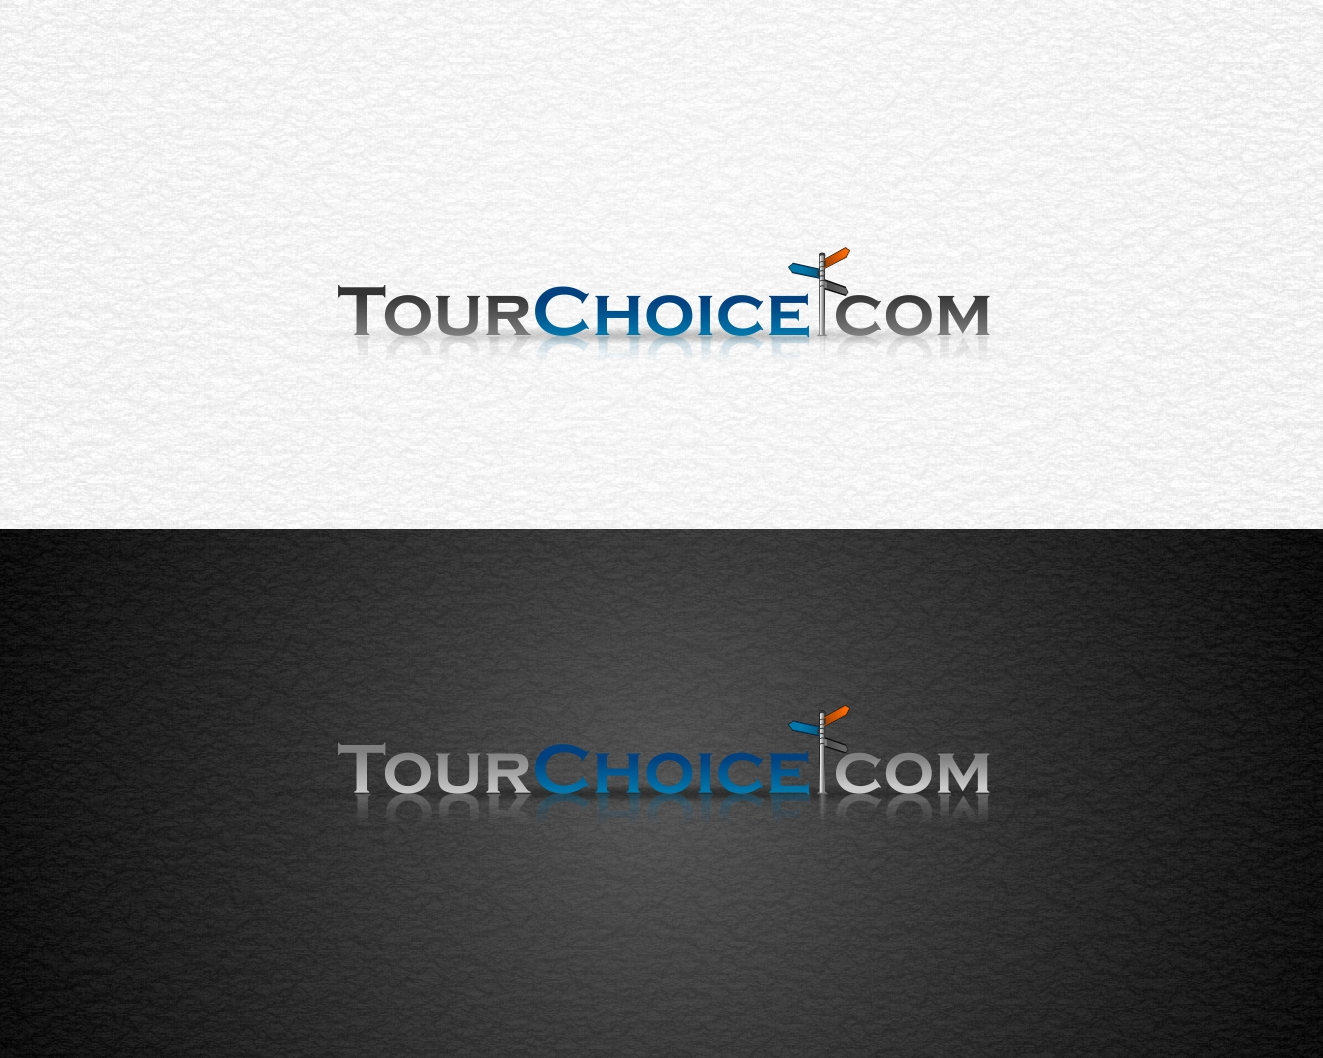 Logo Design by Rares.Andrei - Entry No. 58 in the Logo Design Contest www.TourChoice.com Logo Design.